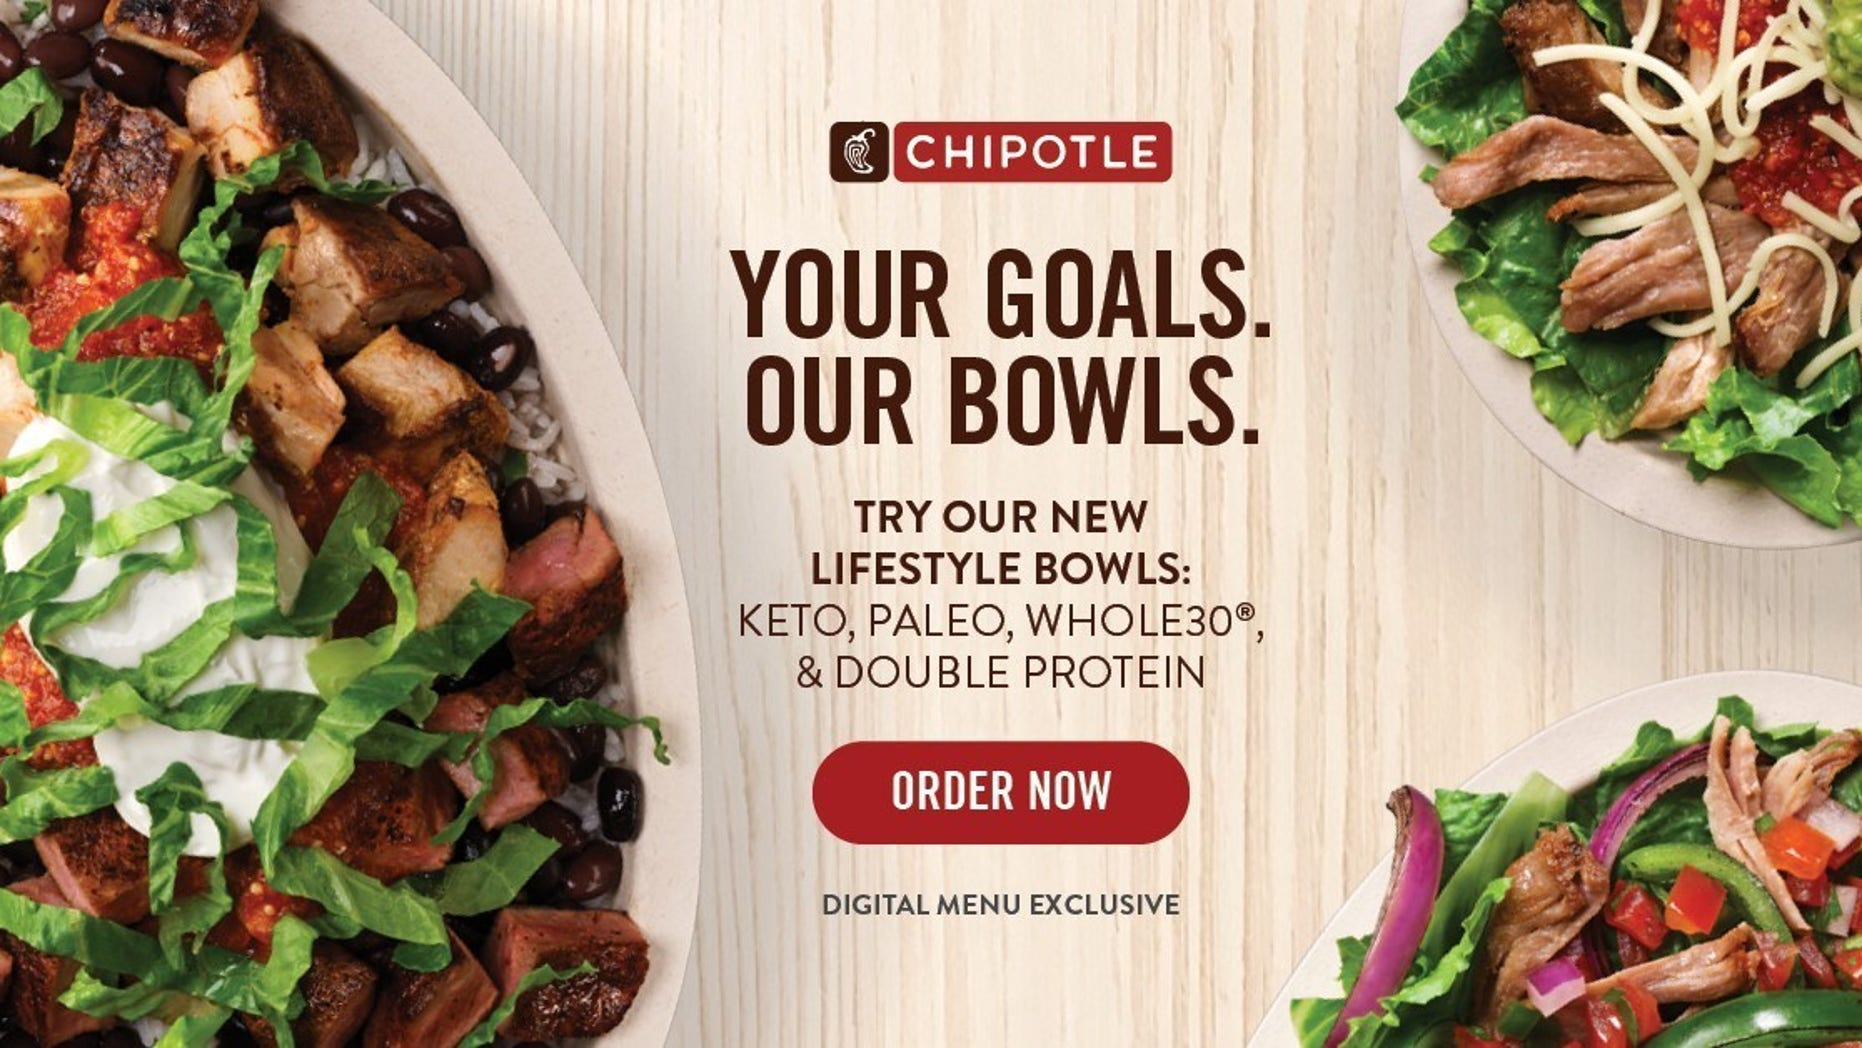 Chipotle Introduces Lifestyle Bowls, Including Paleo, Keto Options